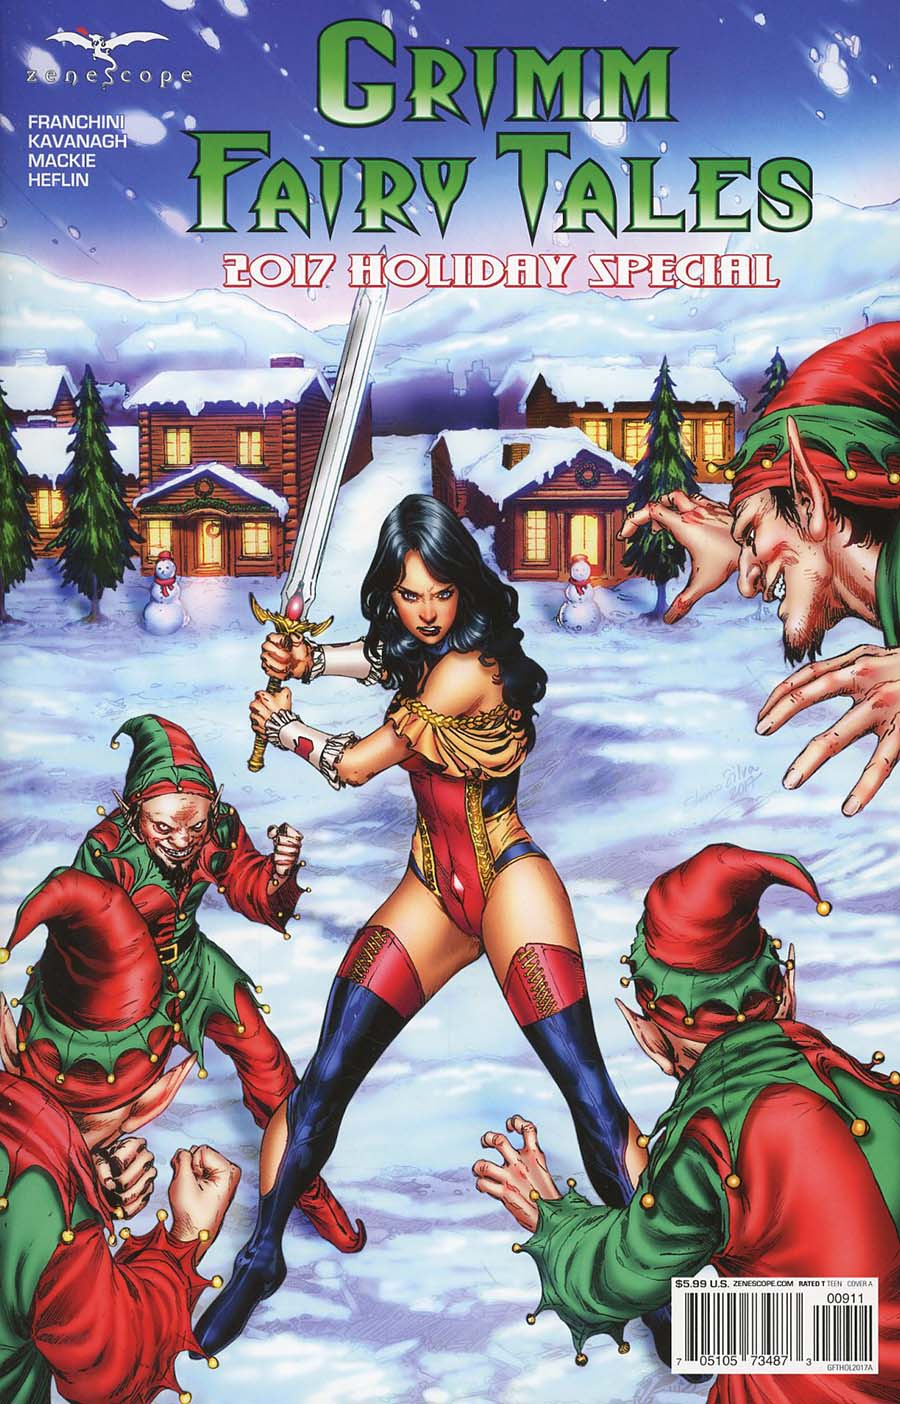 Grimm Fairy Tales 2017 Holiday Special Cover A Ediano Silva